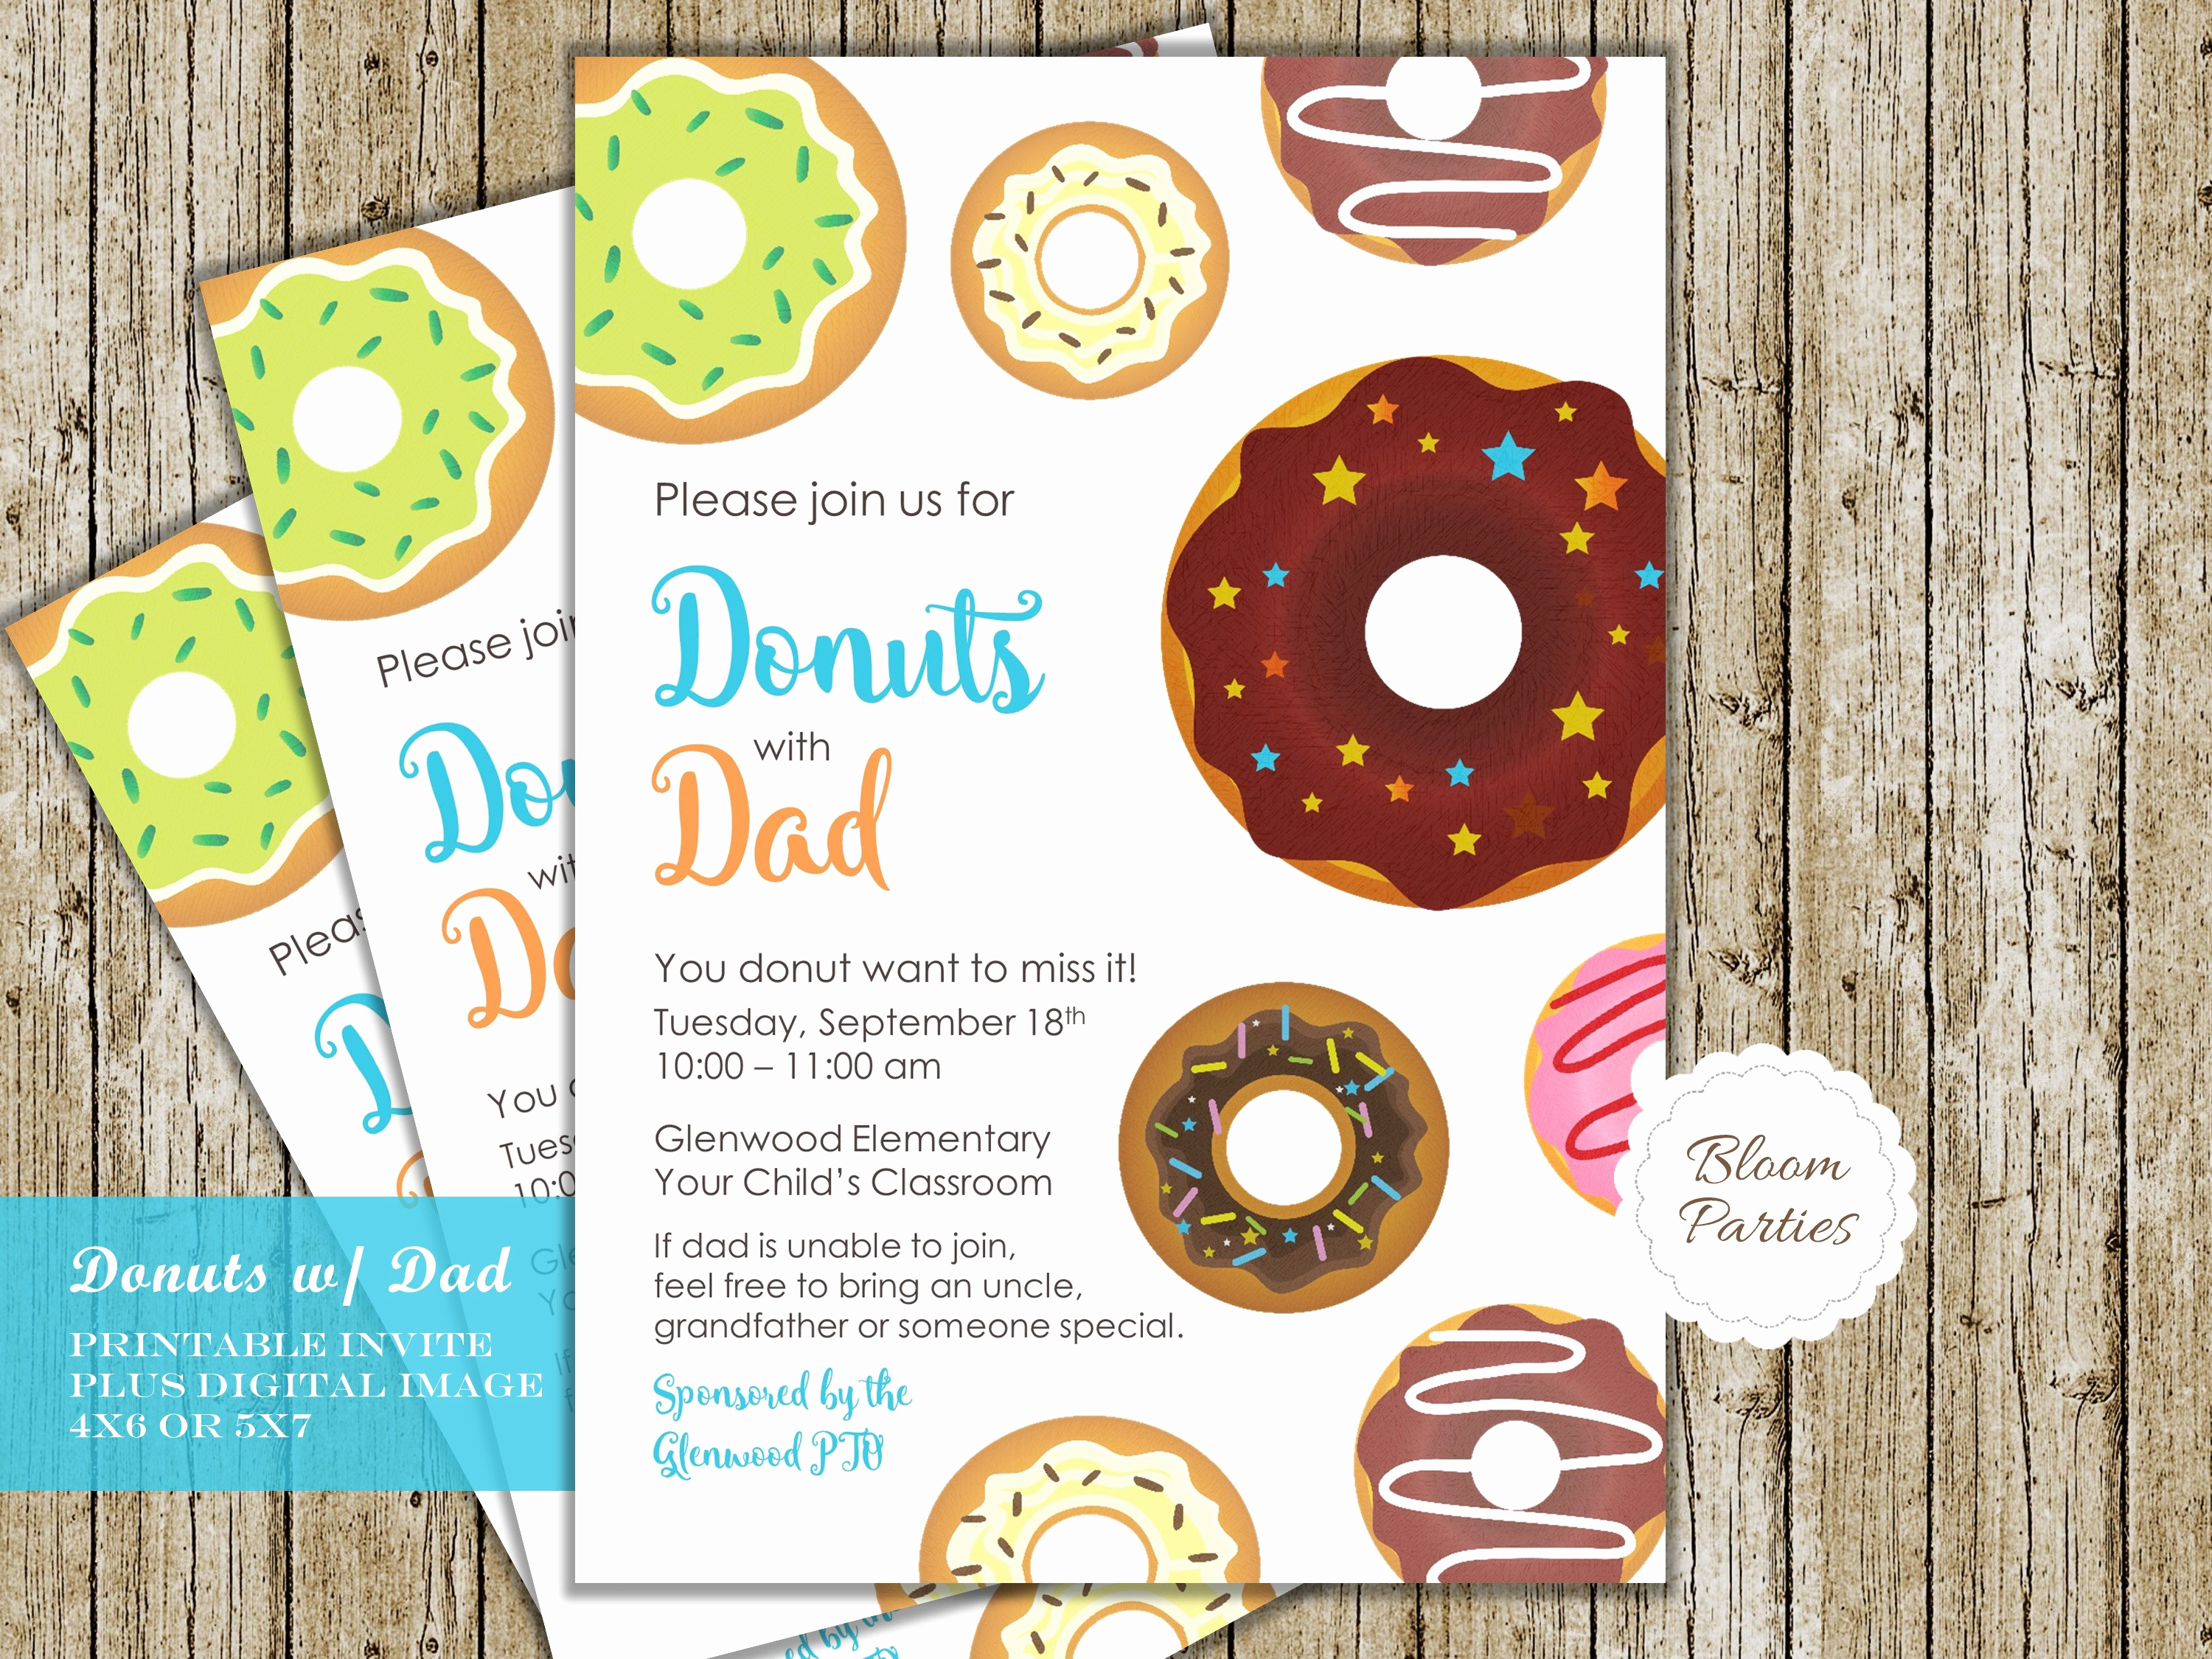 Donuts with Dad Invitation Best Of Donuts with Dad Invitation Pto Pta Announcement School Church